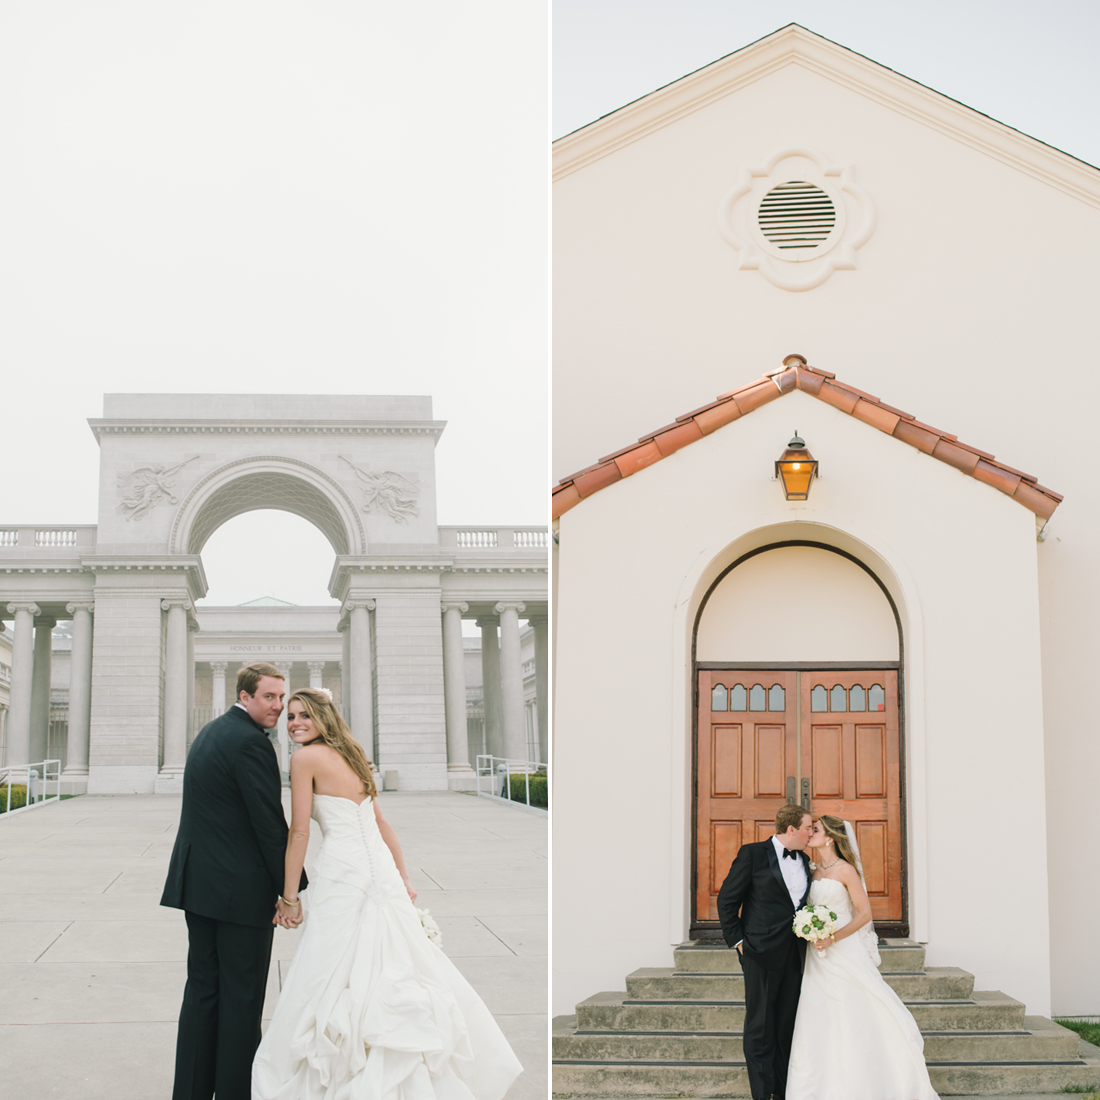 "How did you decide on your theme and location? ""When it came time to choose a city, San Francisco was an easy choice for me. Fisherman's Wharf was perfect for that iconic San Francisco feel of clam chowder in bread bowls, sea lions at Pier 39, and great views of the bay. Fort Mason was a bit more old world with views of the Golden Gate, and the chapel was the perfect size to fit our guests. It was sunny that afternoon in the Marina, and the venue being near the water was perfect. I had always wanted our reception to be at the Legion of Honor from the moment we got engaged. It reminded me of the museums in DC we spent time visiting while we were dating. We had a bus take guest from Fort Mason on a drive along the coast to the Legion, and when we arrived, in true San Francisco style, it was covered in fog."" Photos by Delbarr Moradi Photography"